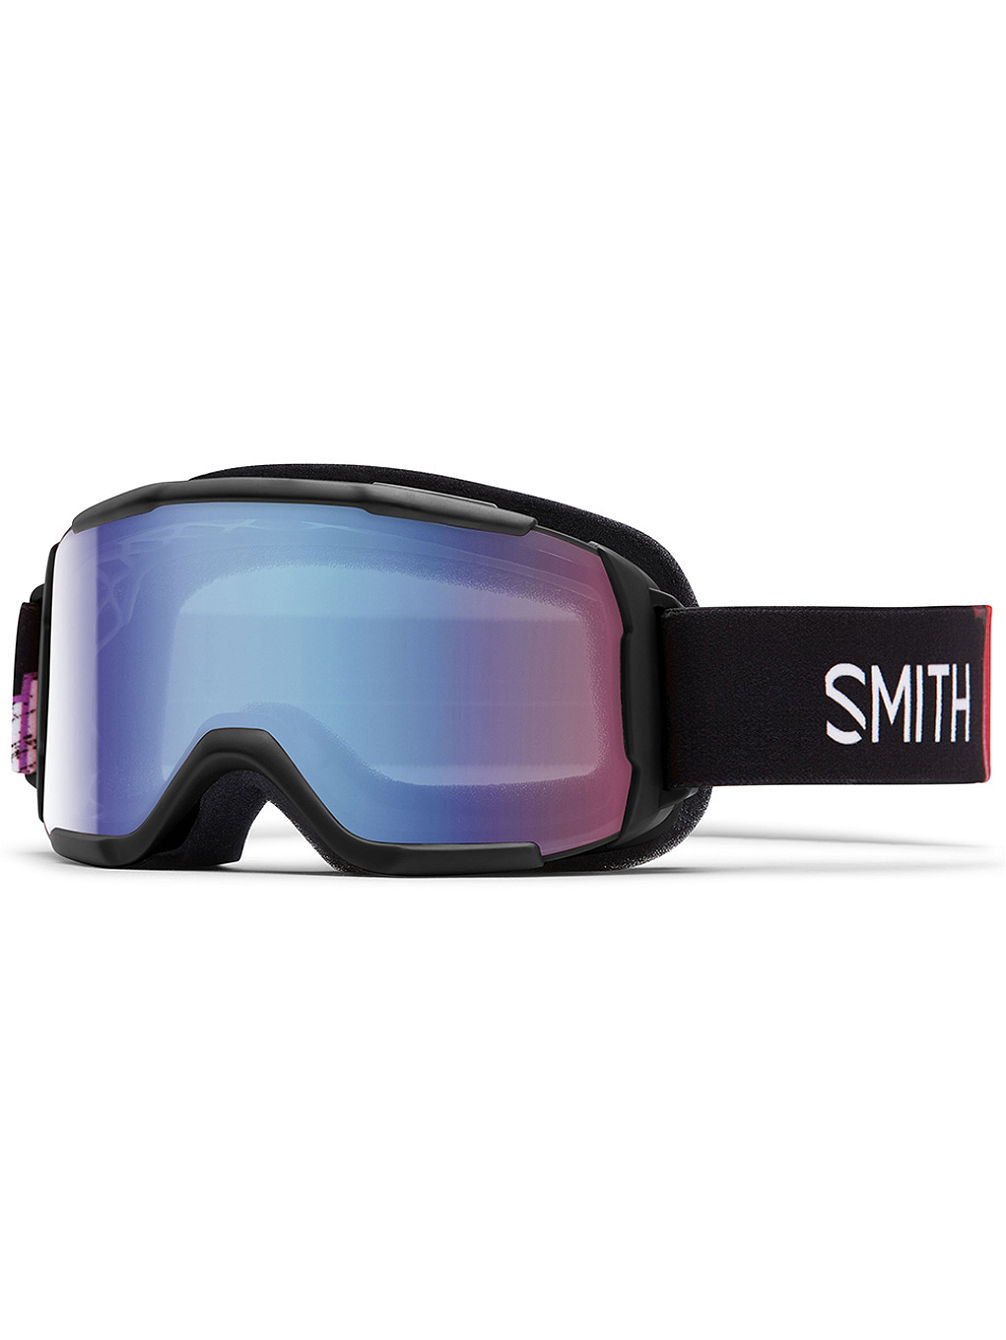 Daredevil black Youth Goggle